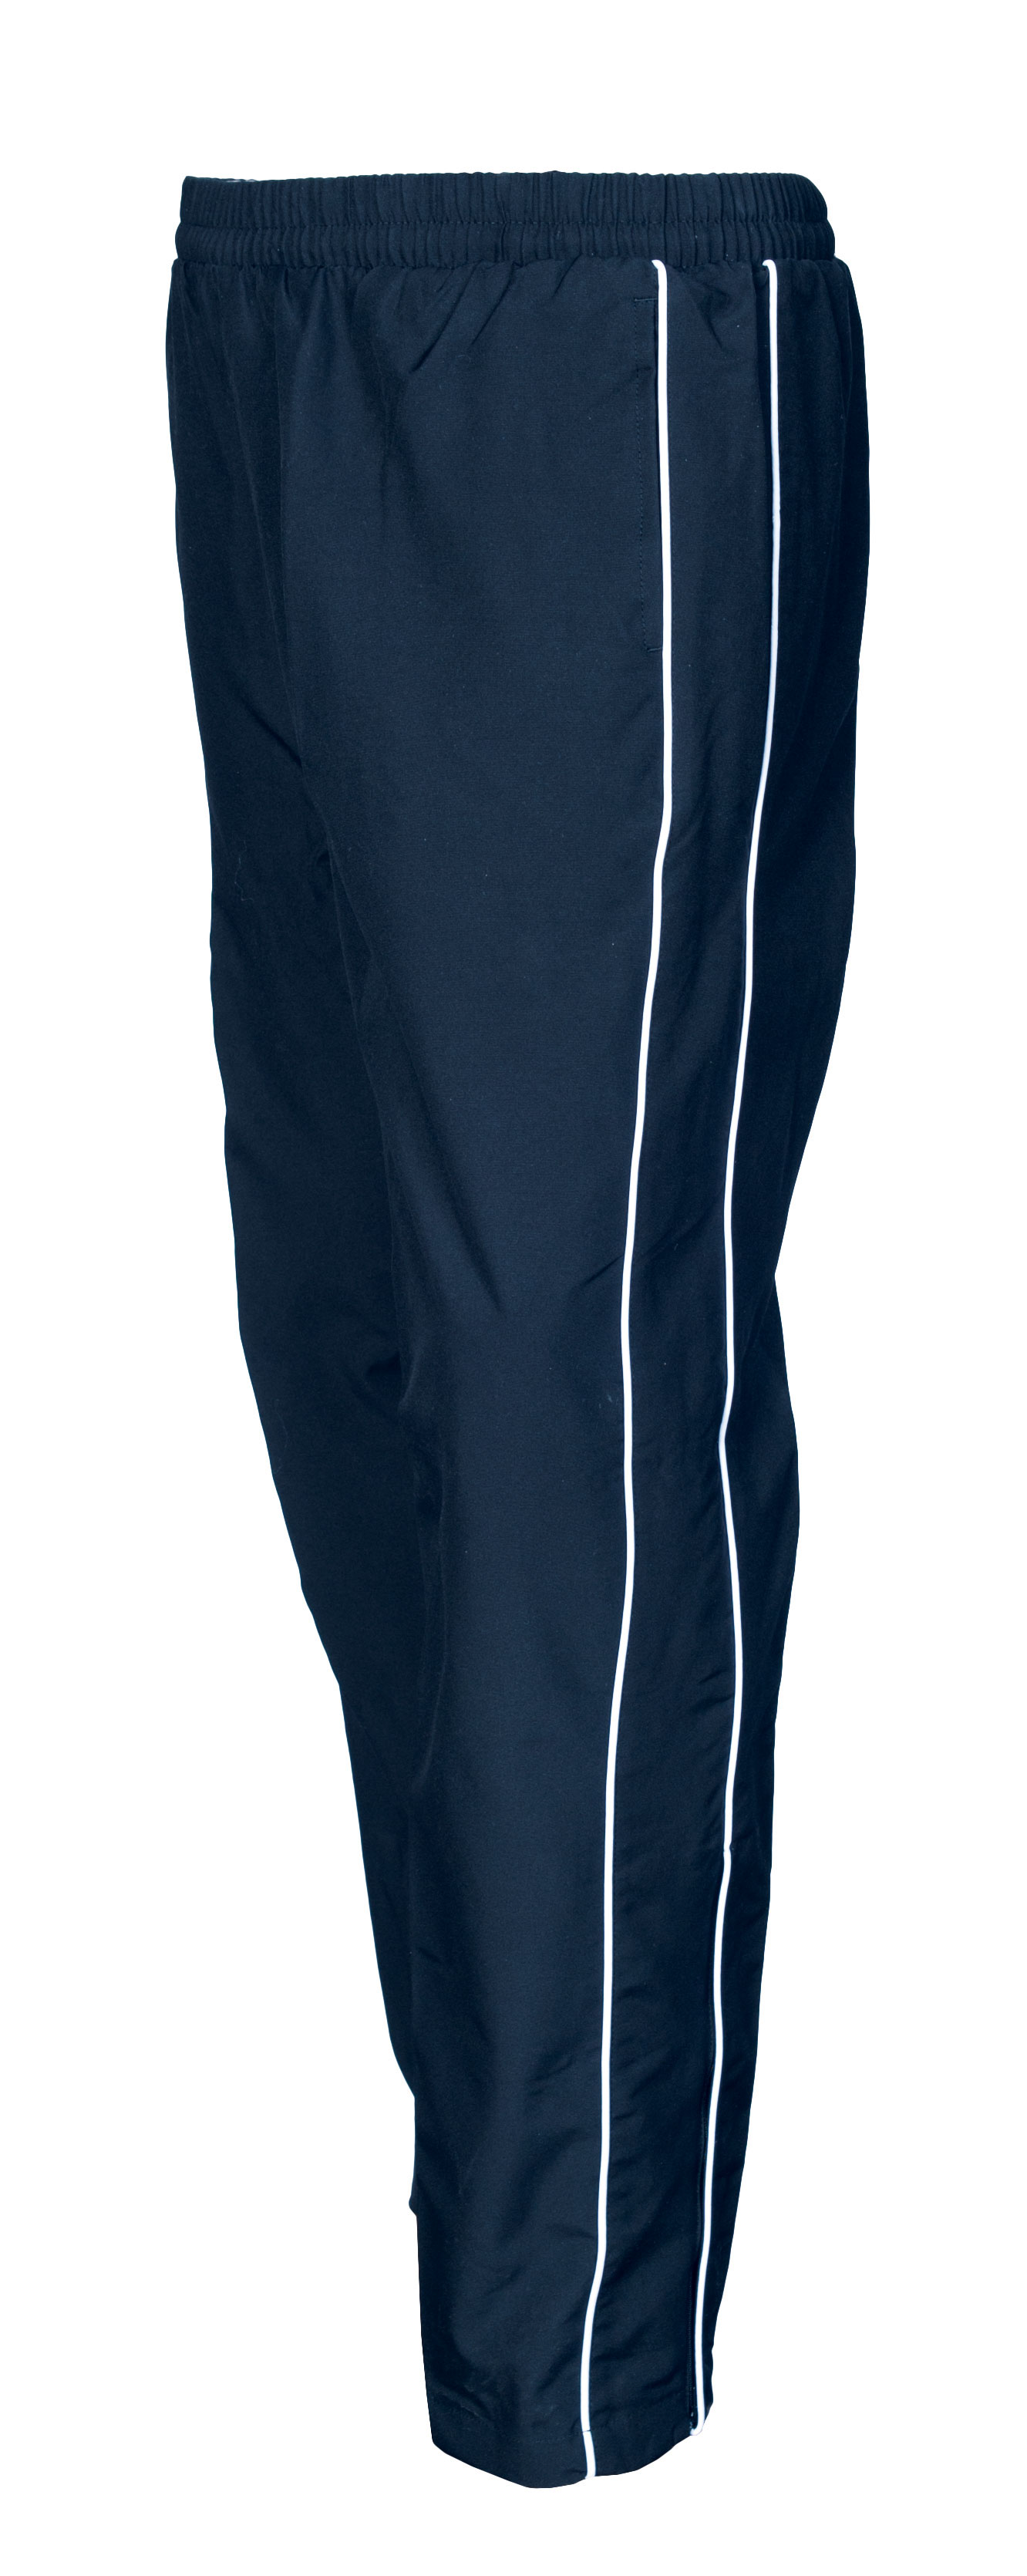 The Liberty  Adult Pants